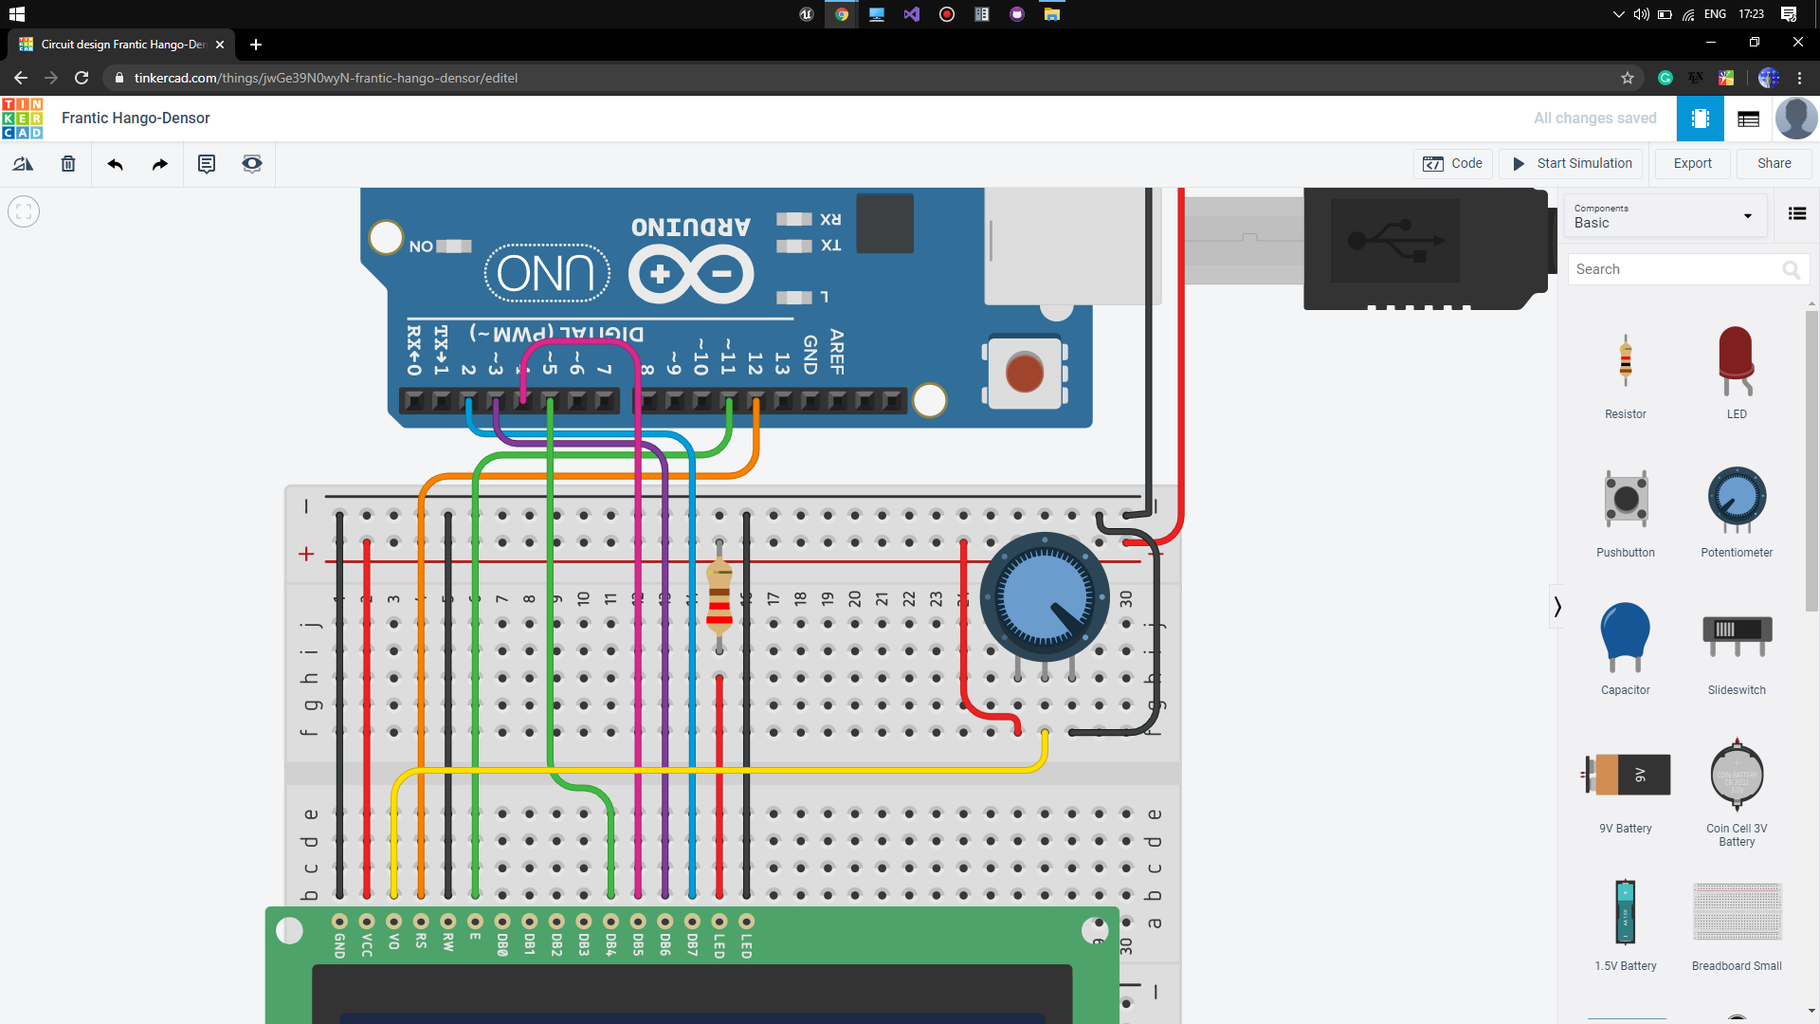 Getting All the Components Connected